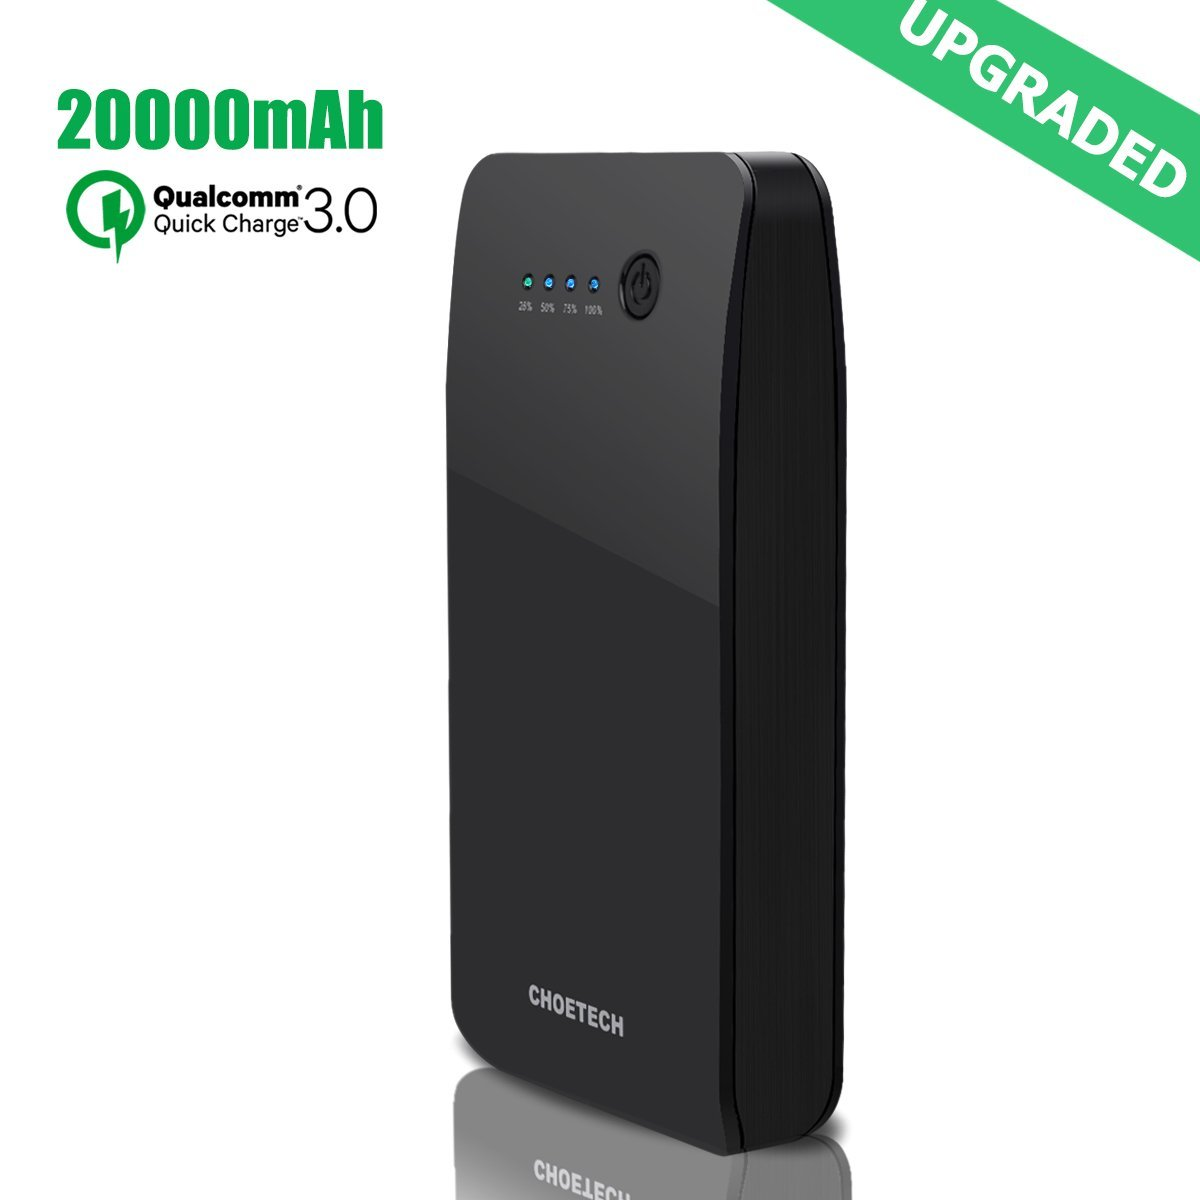 [Quick Charge 3.0] CHOETECH 20000mAh Portable Charger with Lightning and Quick Charge Inputs 20000 Power Bank(Backwards Compatible with Quick Charge 2.0) For Samsung, iPhone, iPad and more